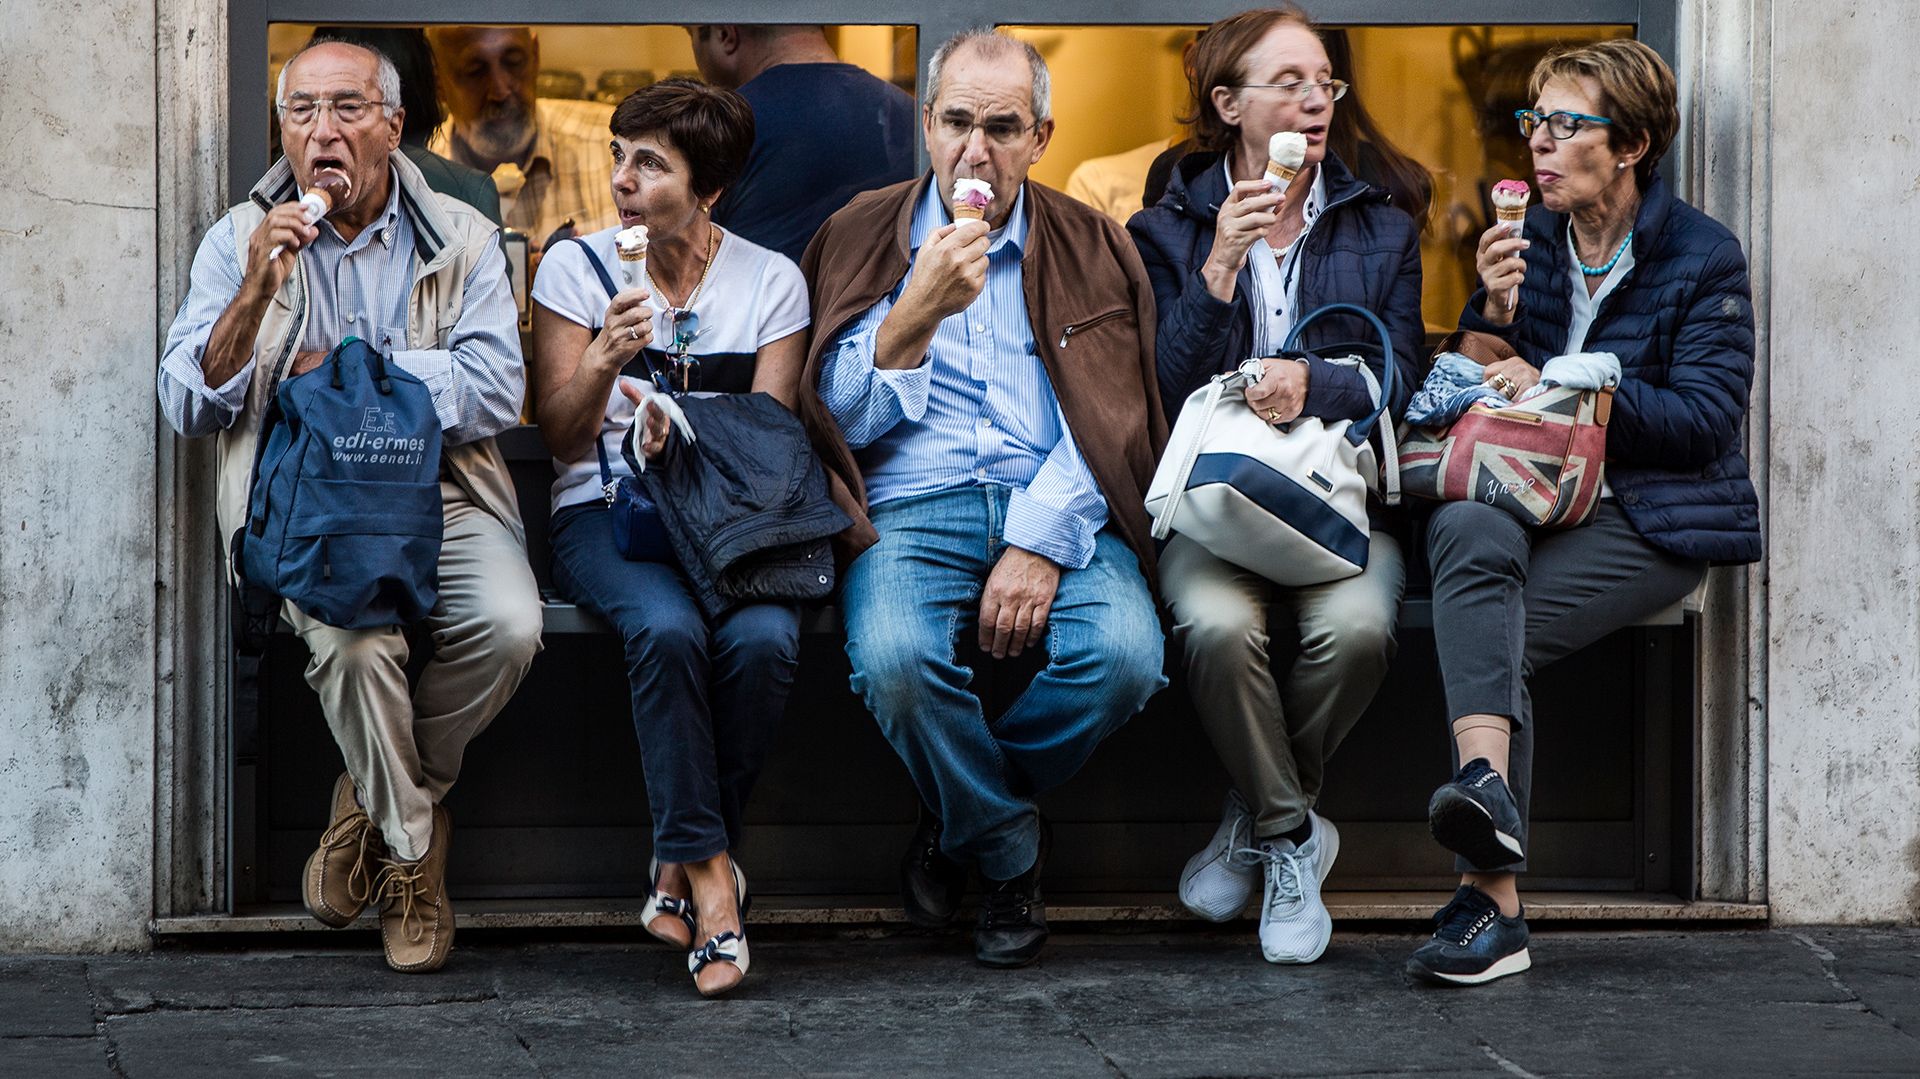 La Dolce Vita, Rome, Italy, pensioneers, elderly, old, ice cream